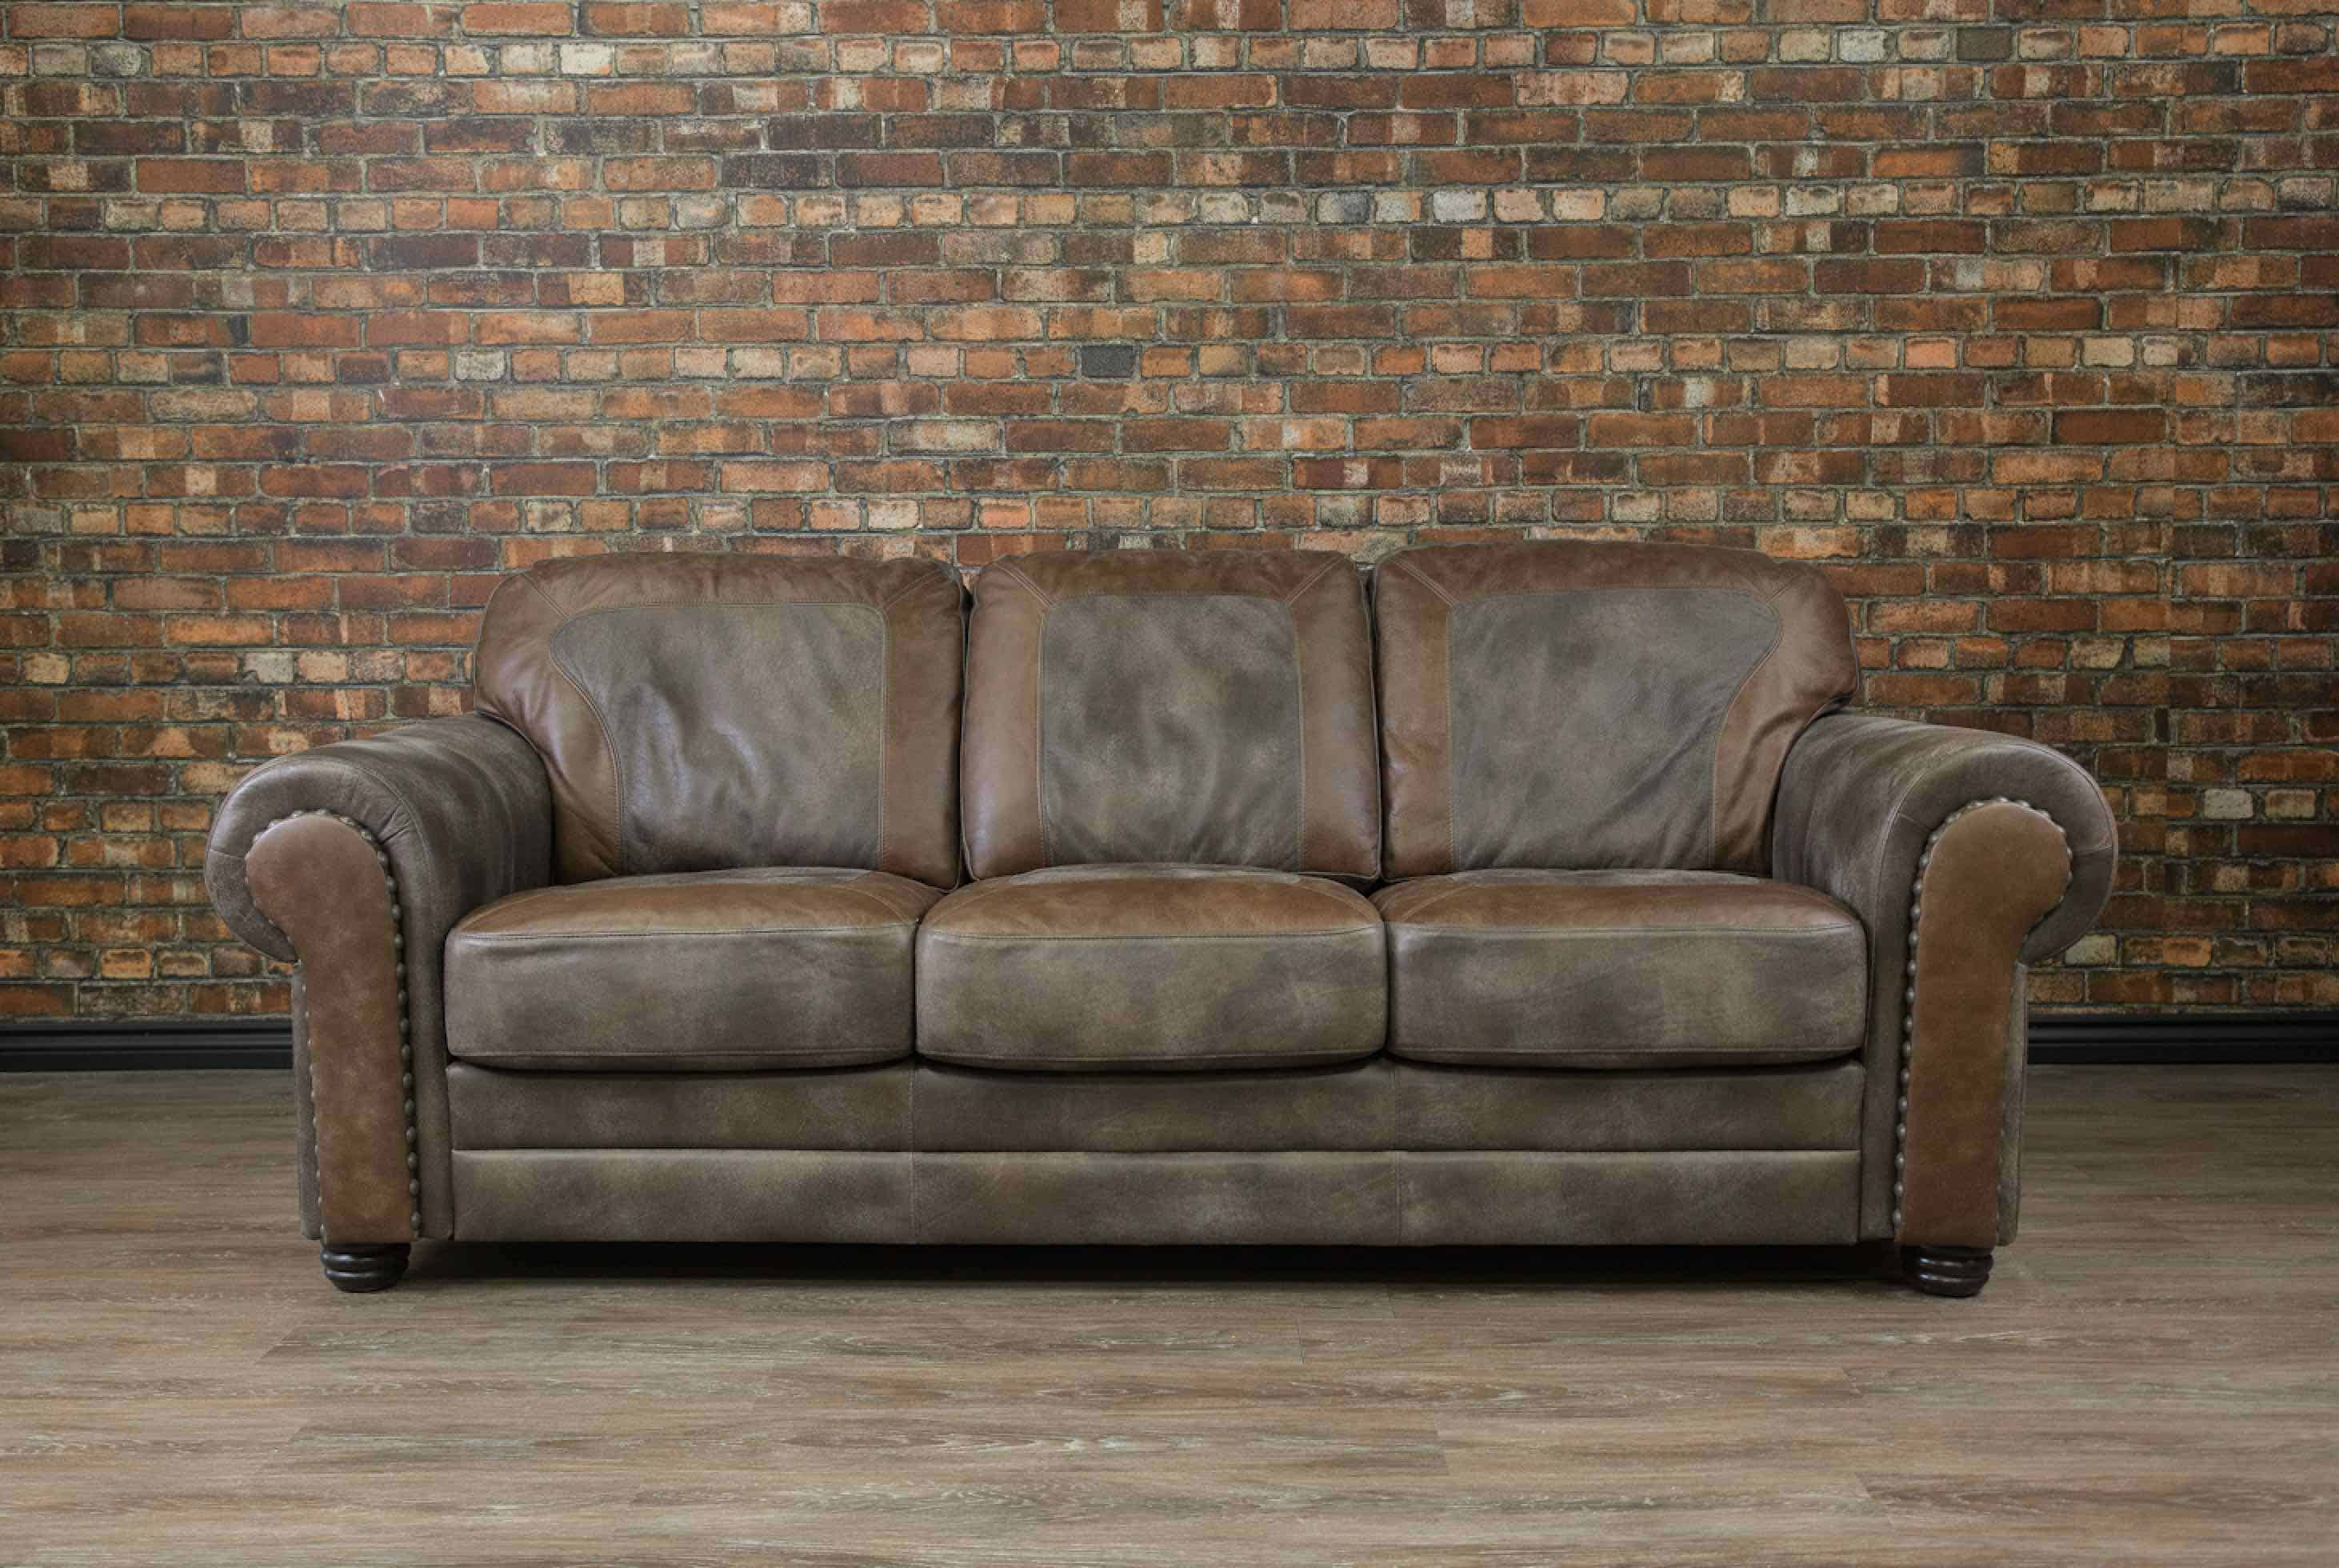 Bettsofa Vintage The Old West Leather Sofa